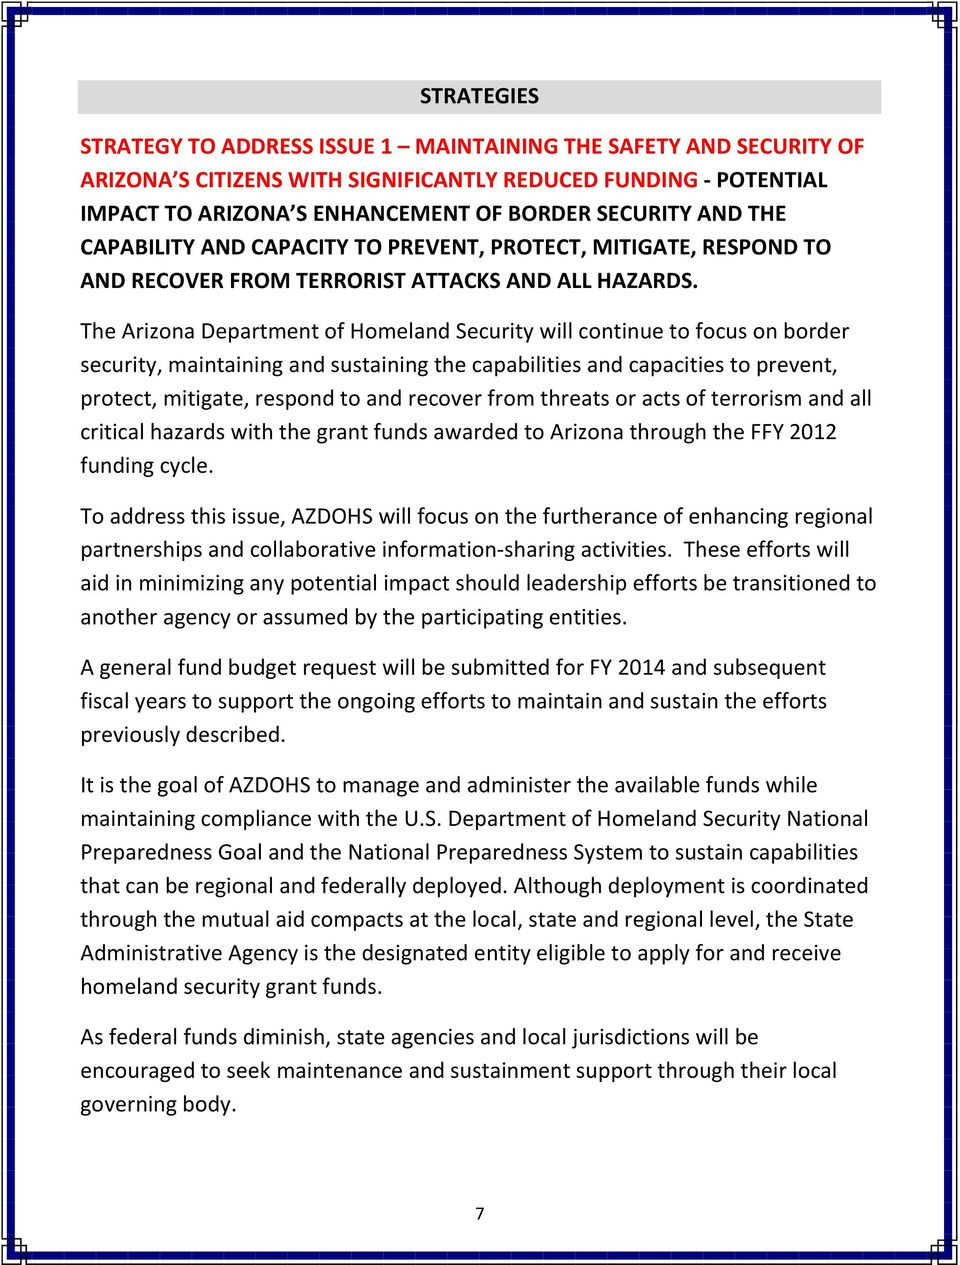 The Arizona Department of Homeland Security will continue to focus on border security, maintaining and sustaining the capabilities and capacities to prevent, protect, mitigate, respond to and recover